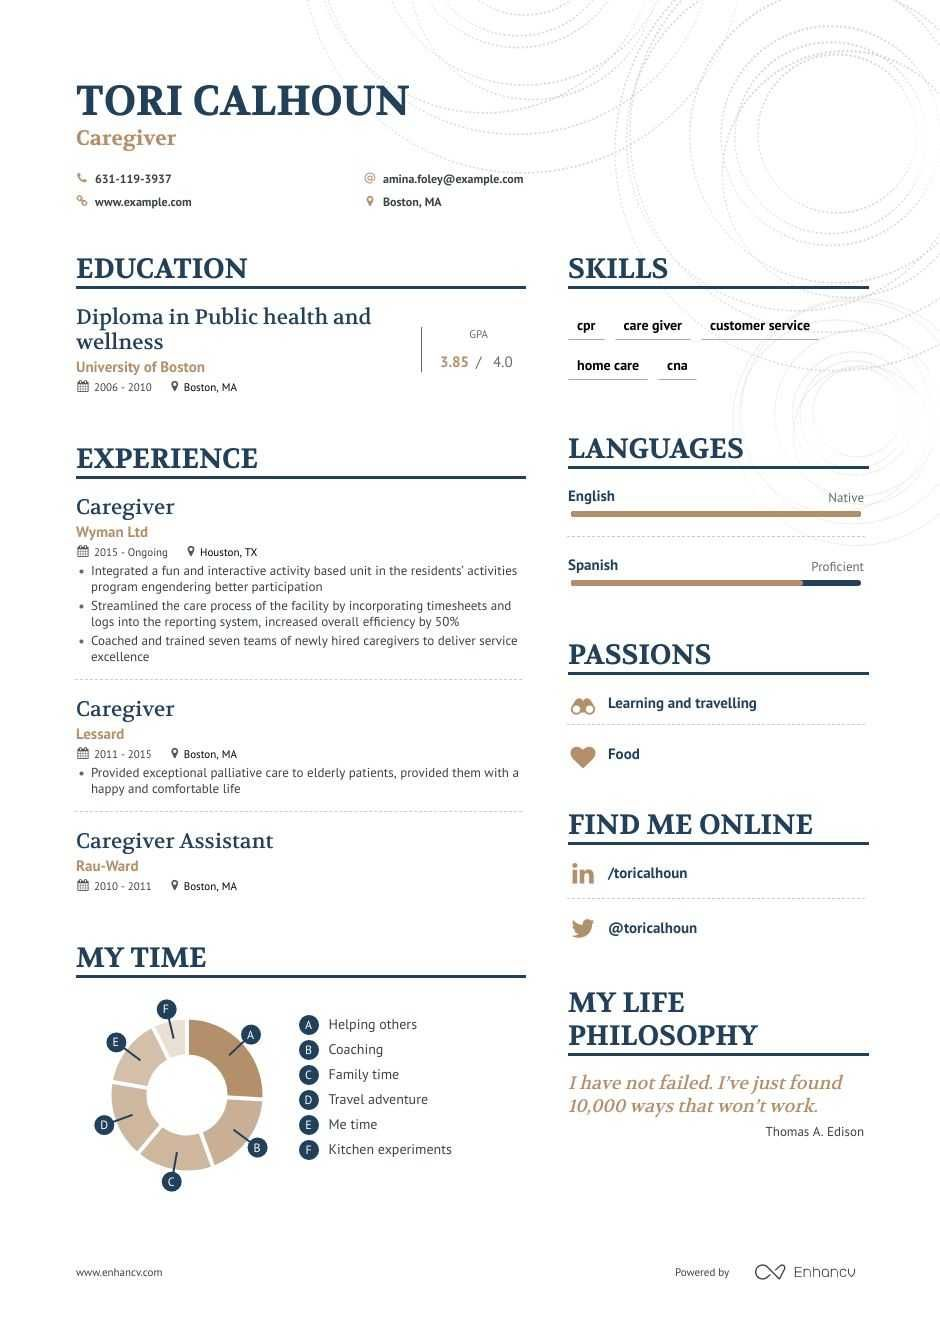 Caregiver resume example in 2020 resume examples